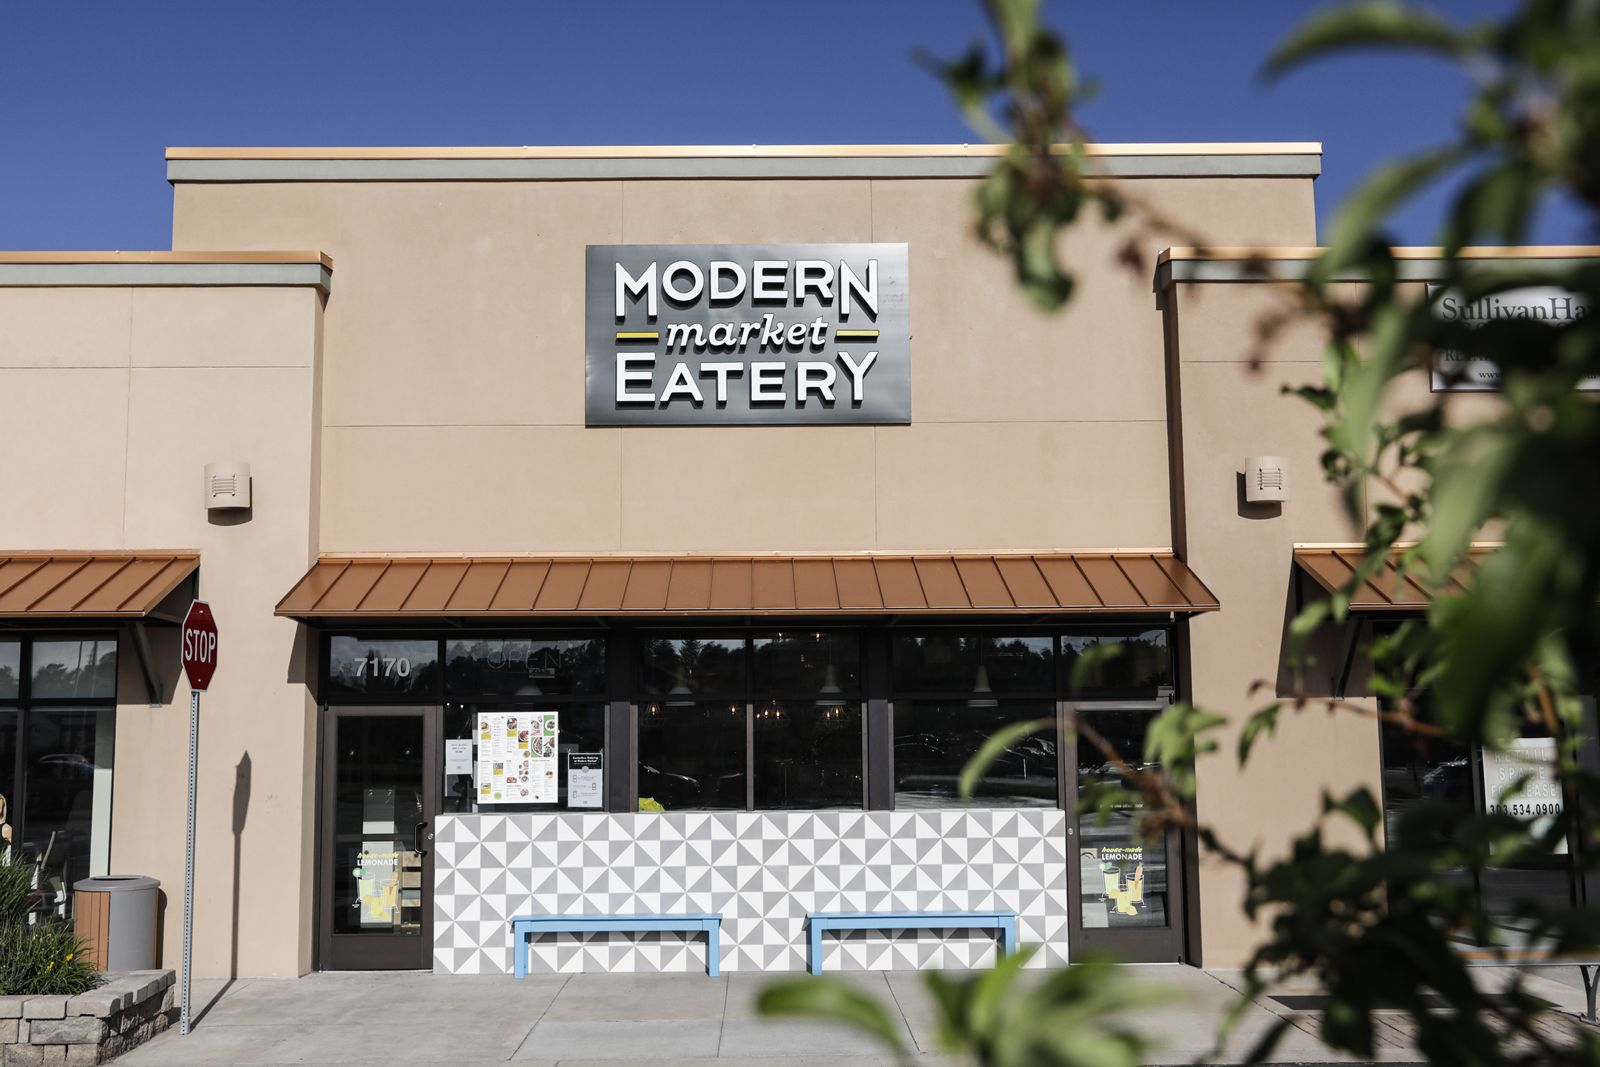 Modern Market Eatery Continues Expansion with New Restaurant Prototype